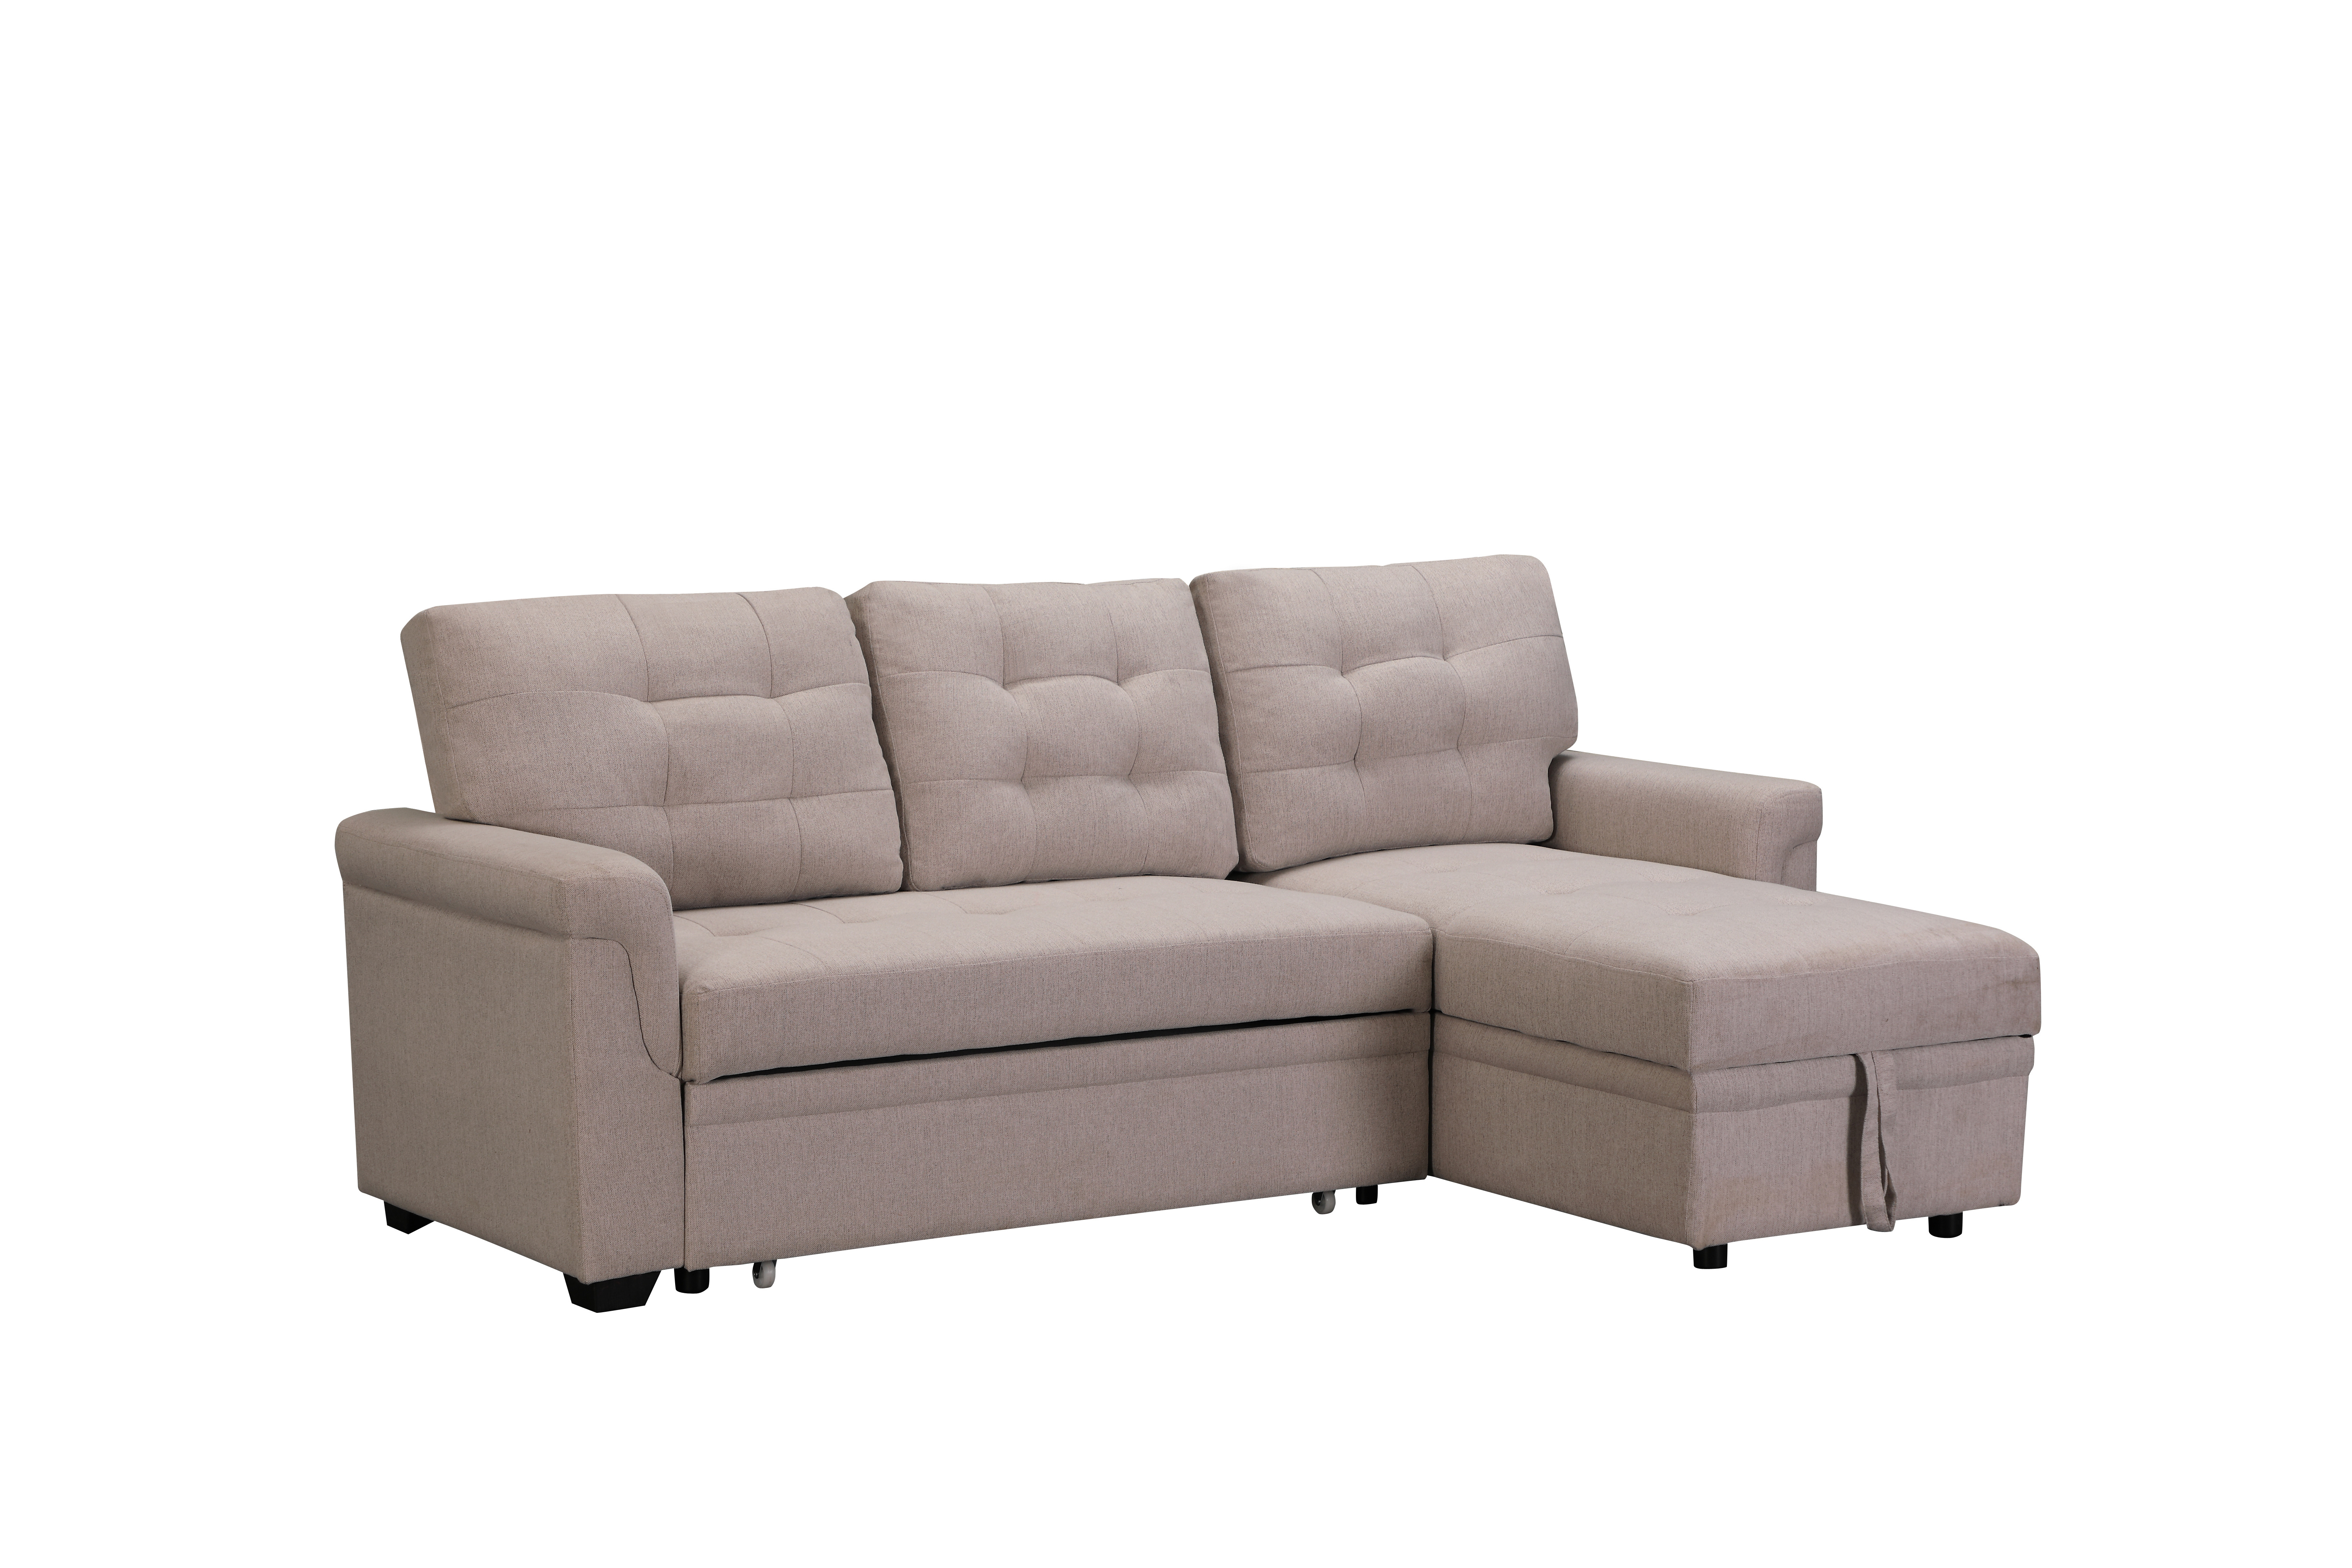 Tufted Sectional Sofa Bed With Fold-Out Twin Size Sleeper And Storage Chaise, 33